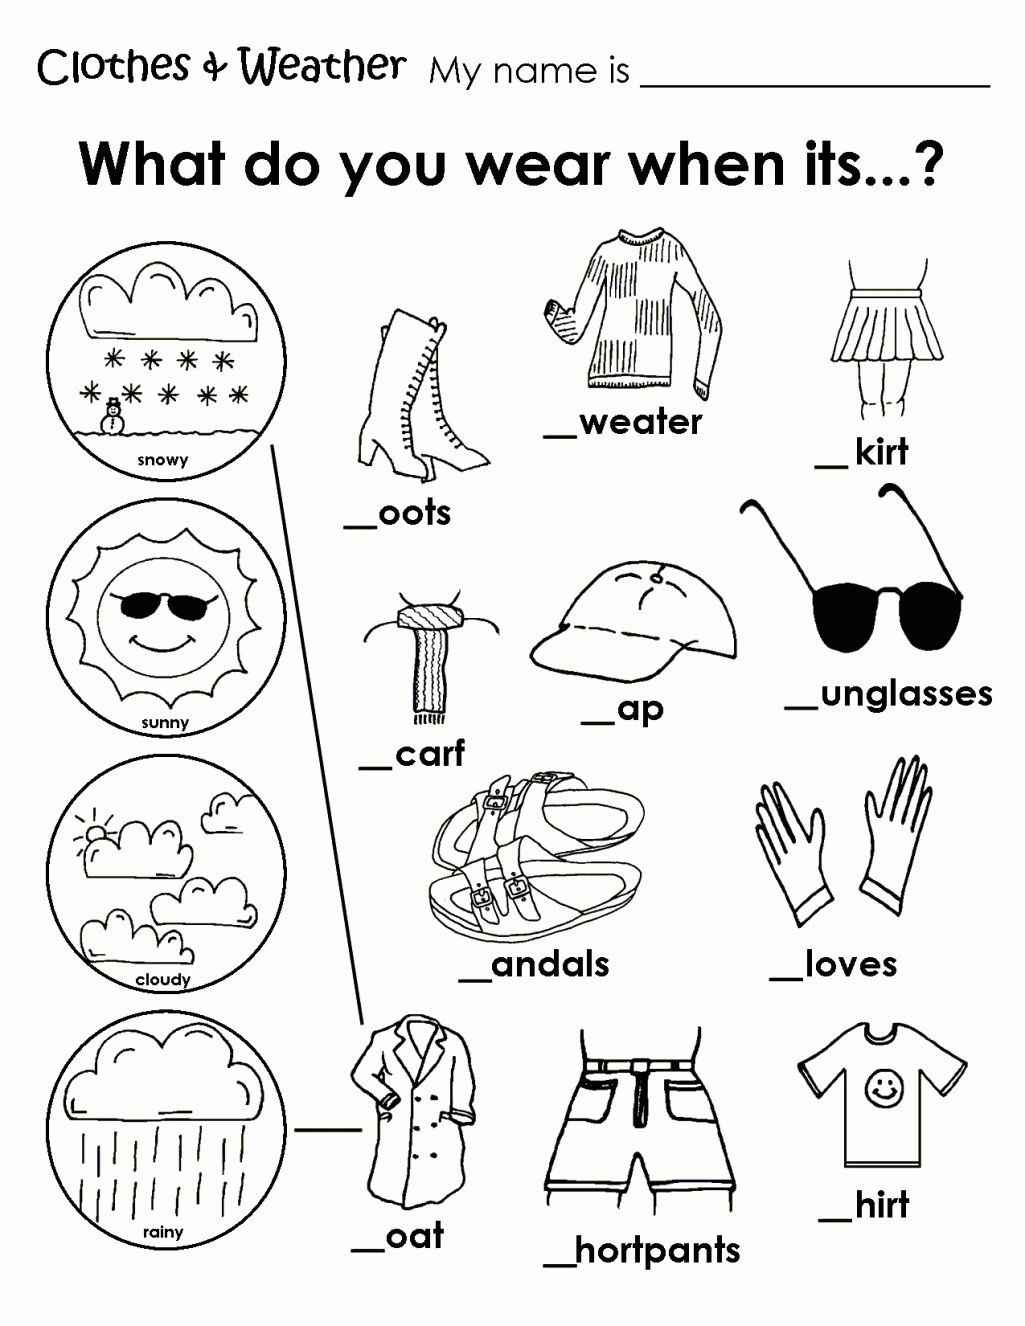 Weather Worksheets for 2nd Graders Printable Weather Clothes Worksheet